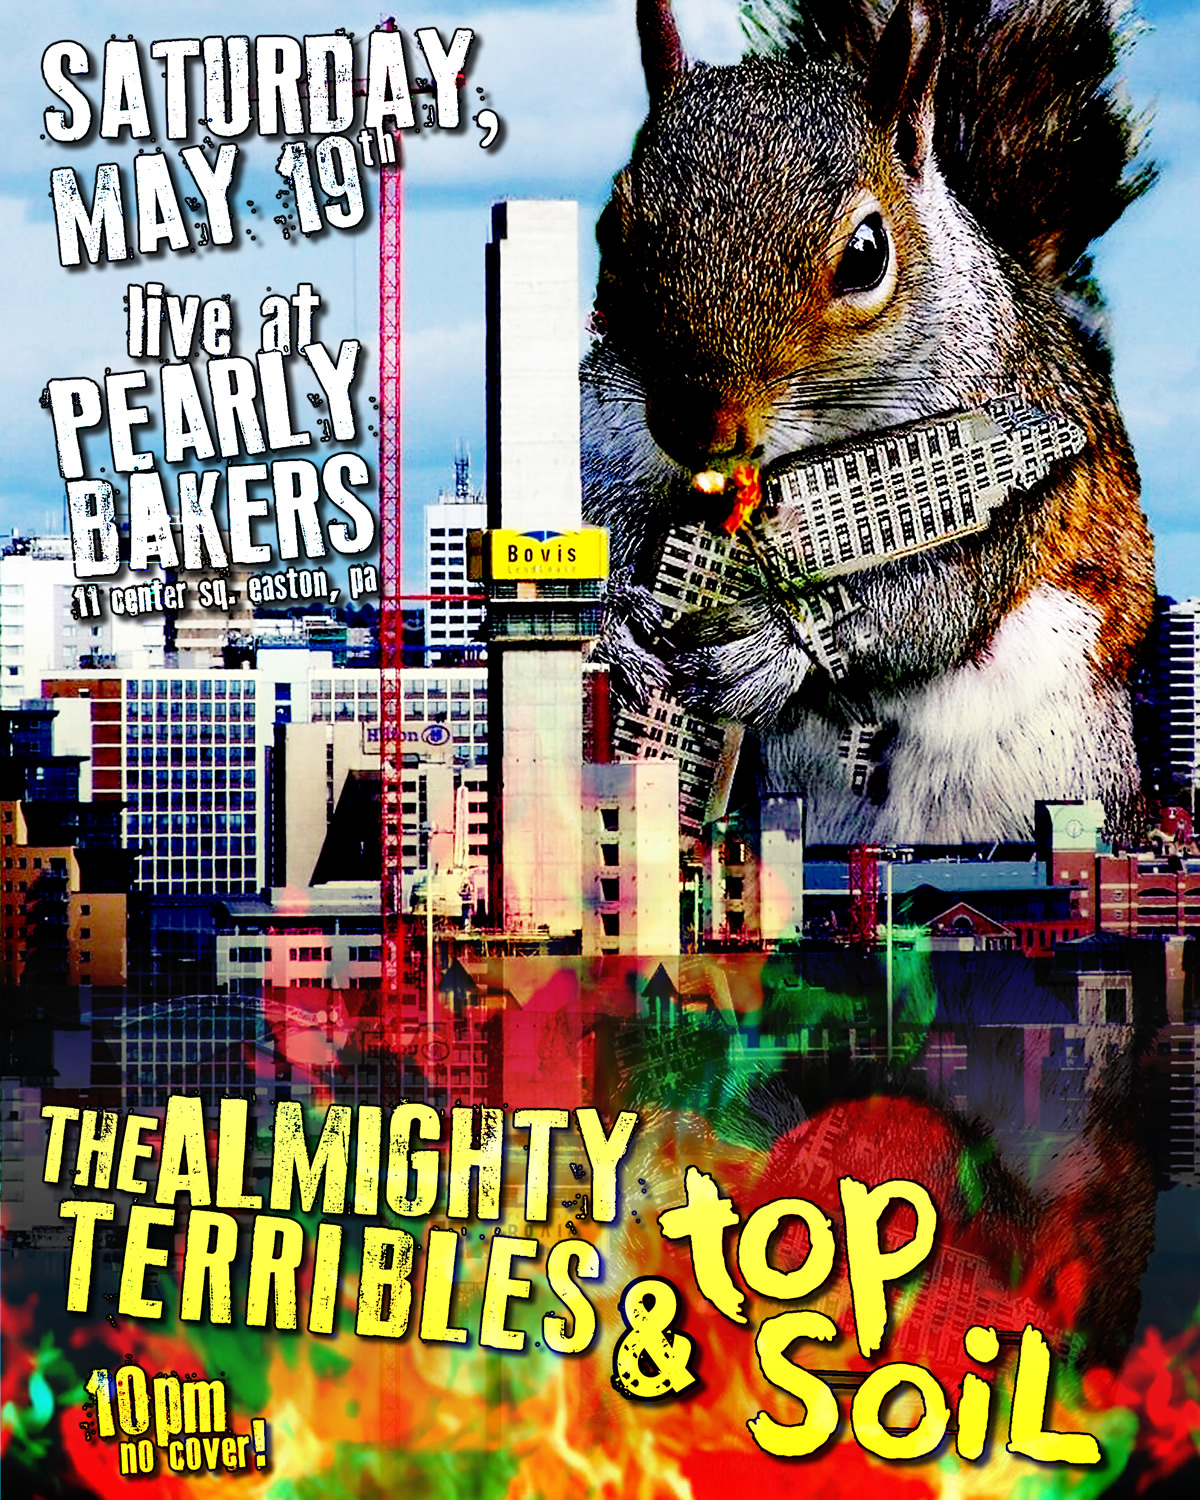 THE ALMIGHTY TERRIBLES & TOP SOIL MAY 19